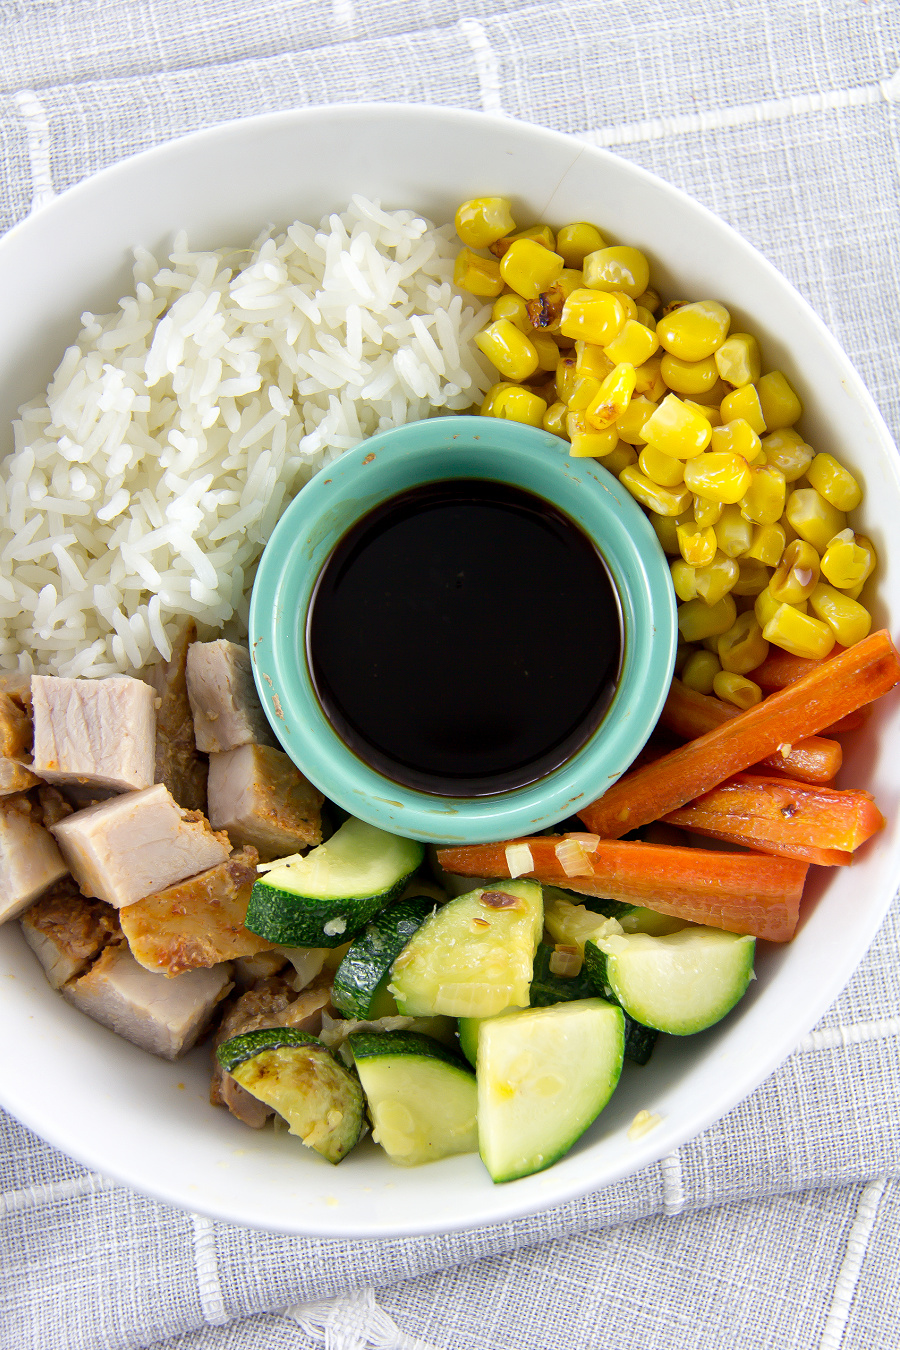 A bowl filled with rice, pork, zucchini, carrots and corn.